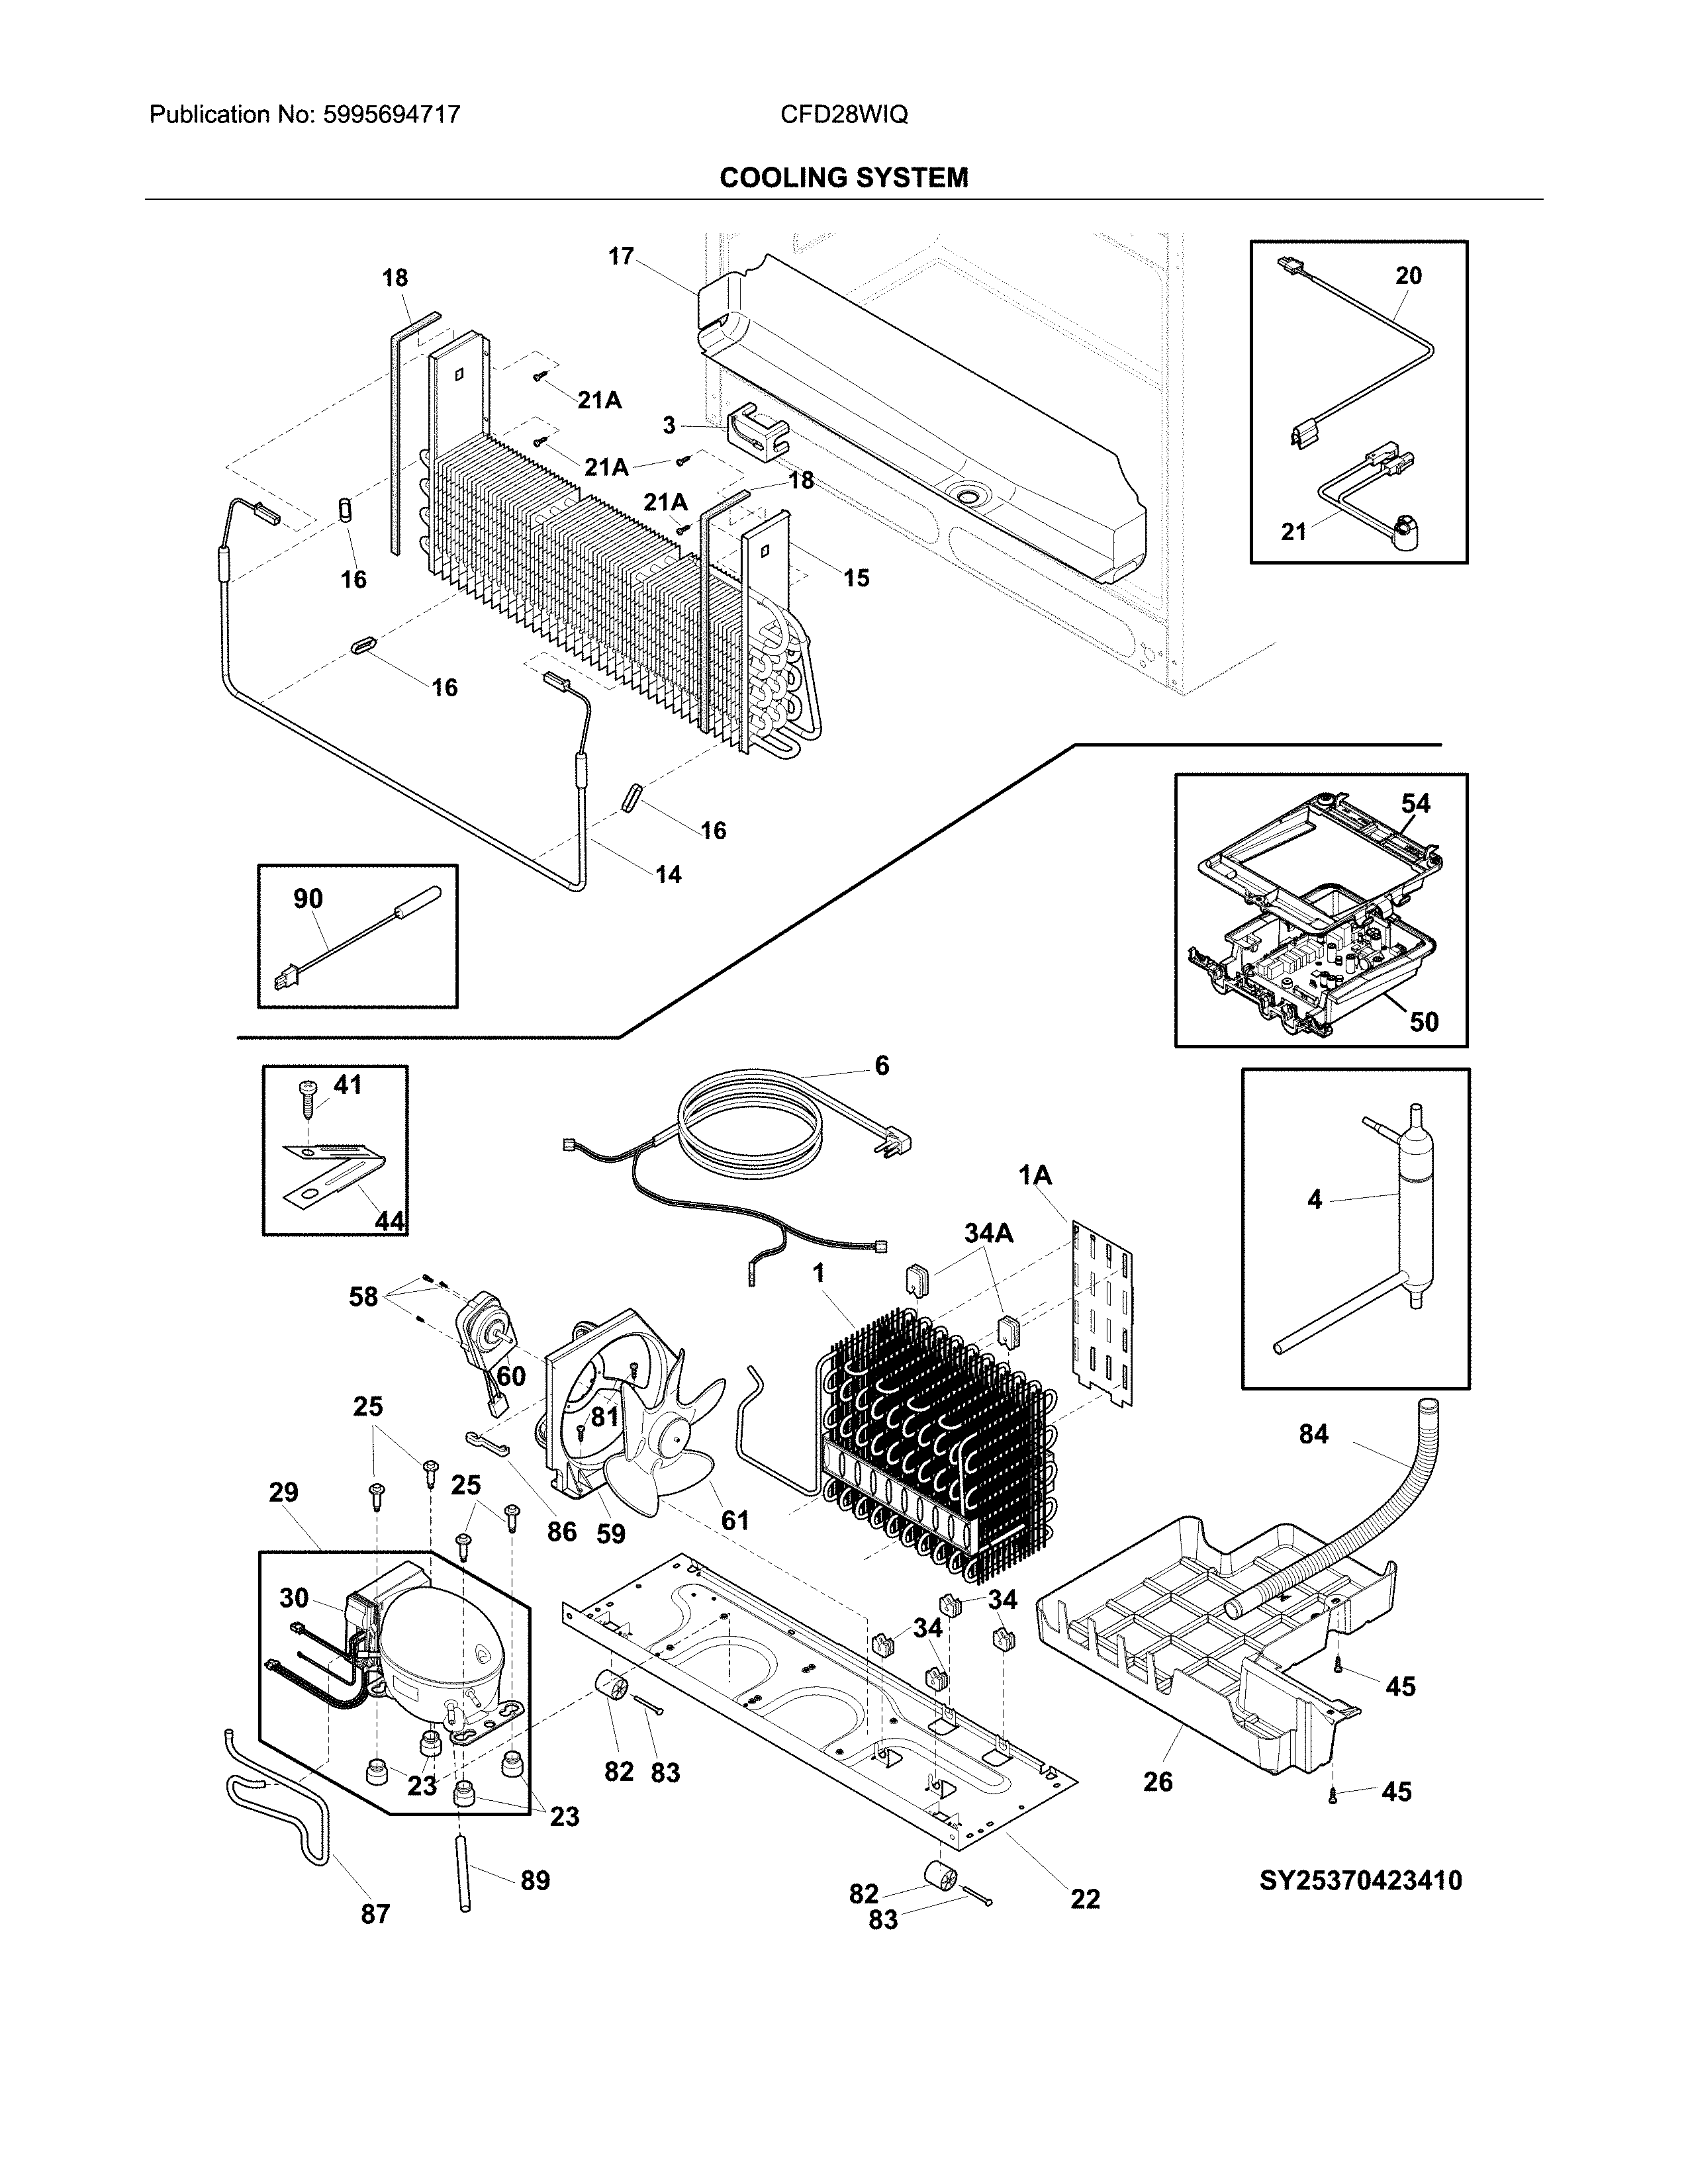 Crosley CFD28WIQW0 cooling system diagram